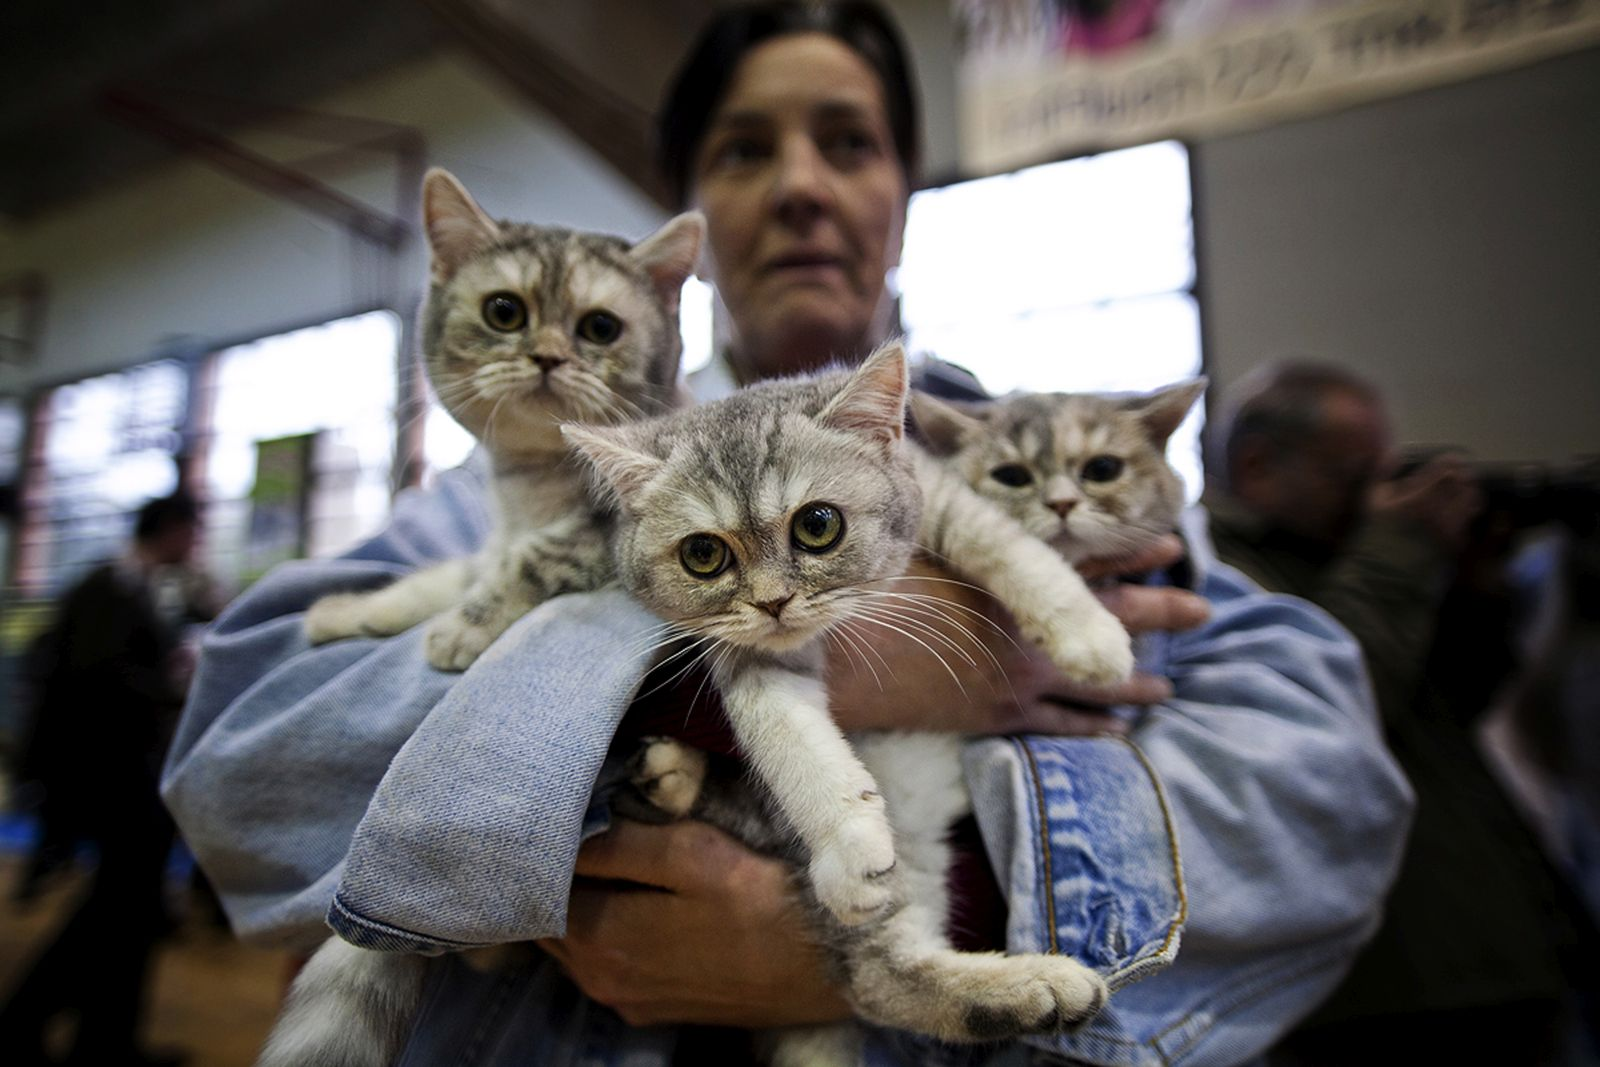 This woman brought her three cats to the 2012 Royal International Exhibition in Holon. Photo by Dima Vazinovich/FLASH90